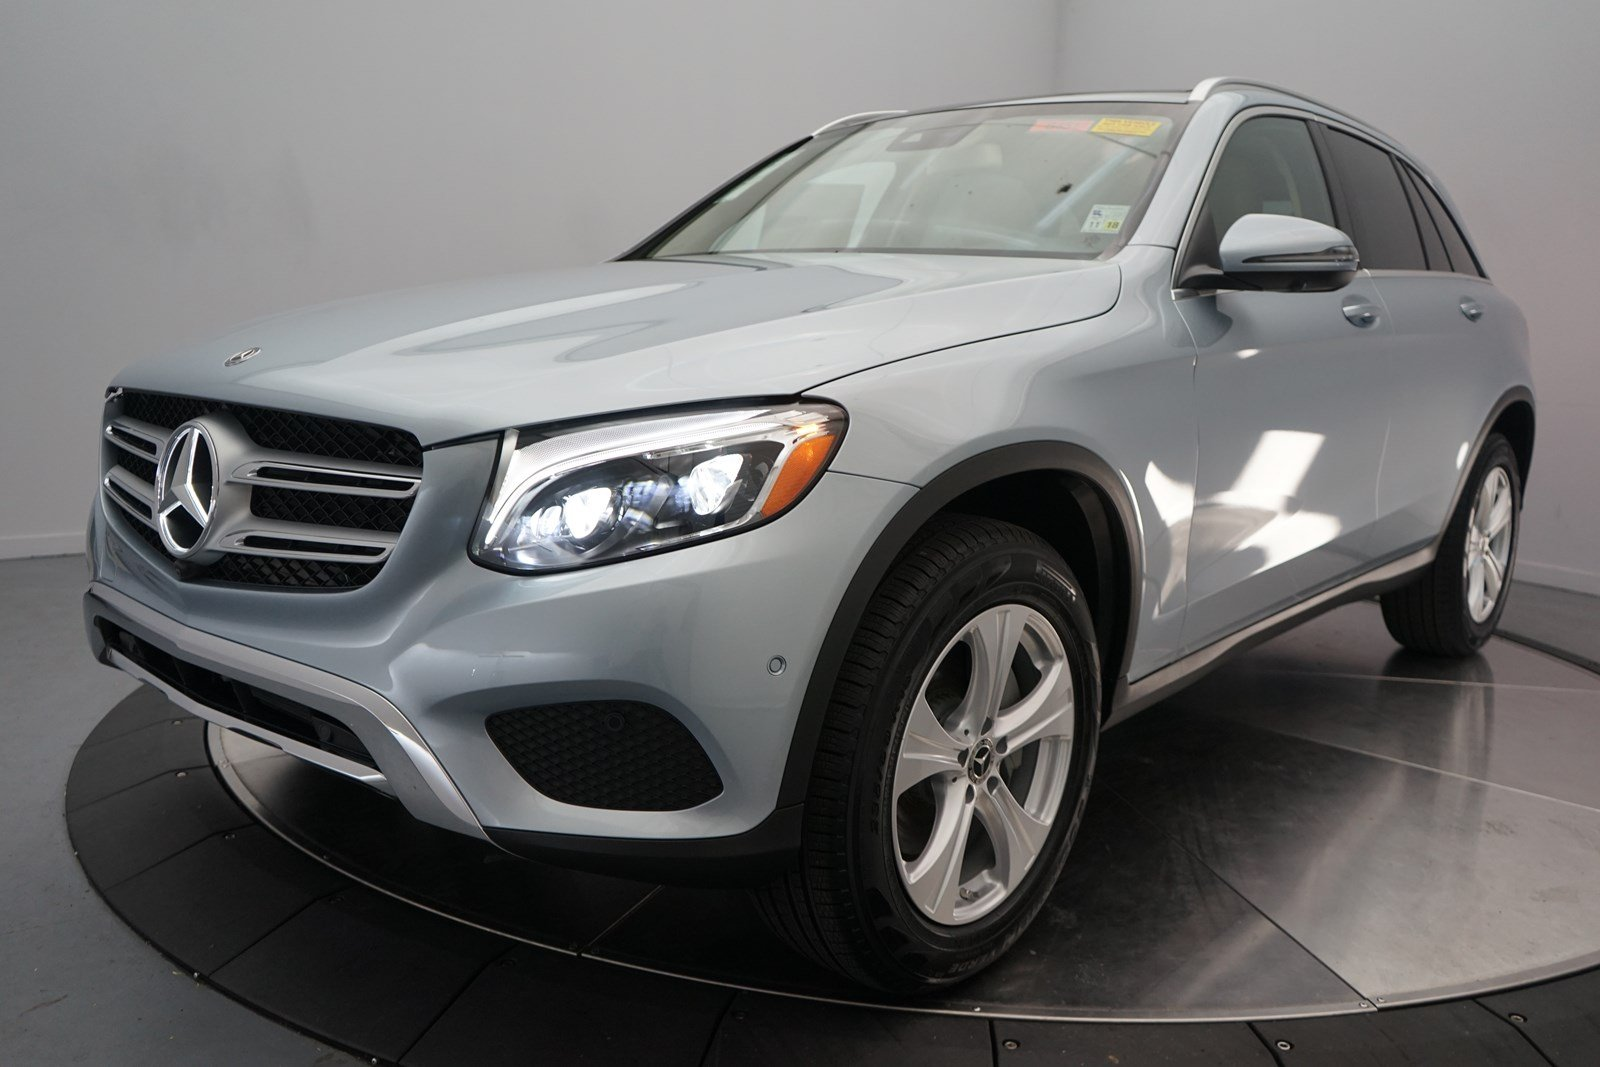 creve mercedes gle benz for suv sale coeur amg in htm mo new bl